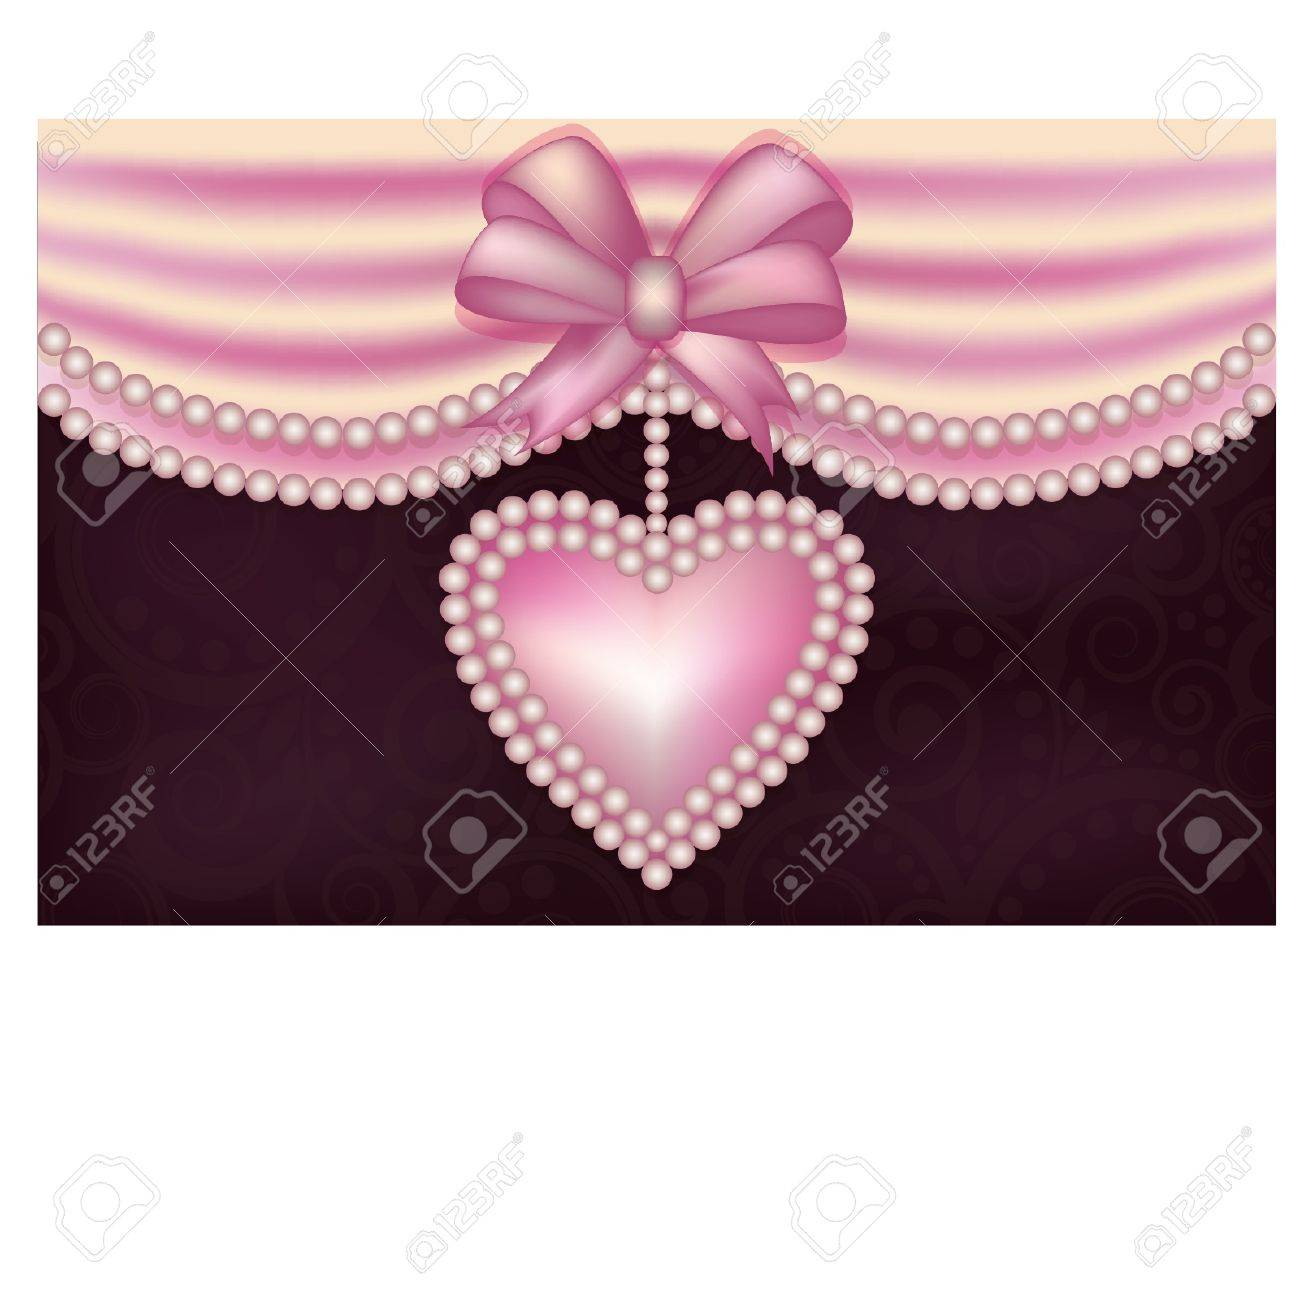 Valentine s Day love banner with pearls heart Stock Vector - 17621756